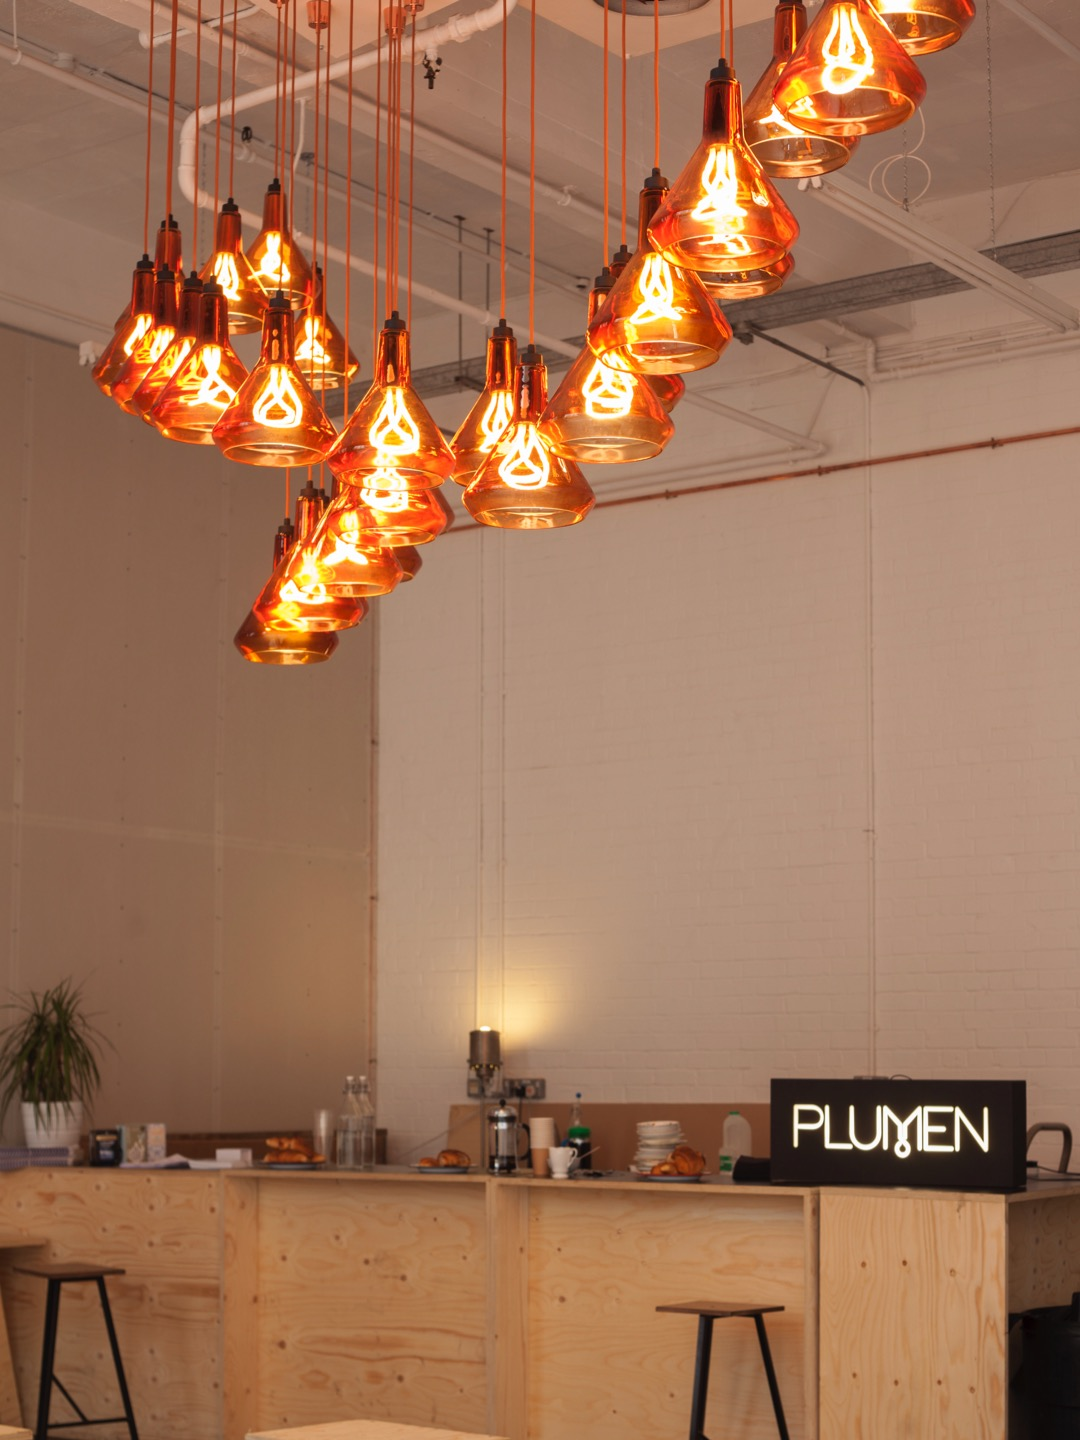 Plumen Design Lighting 燈飾